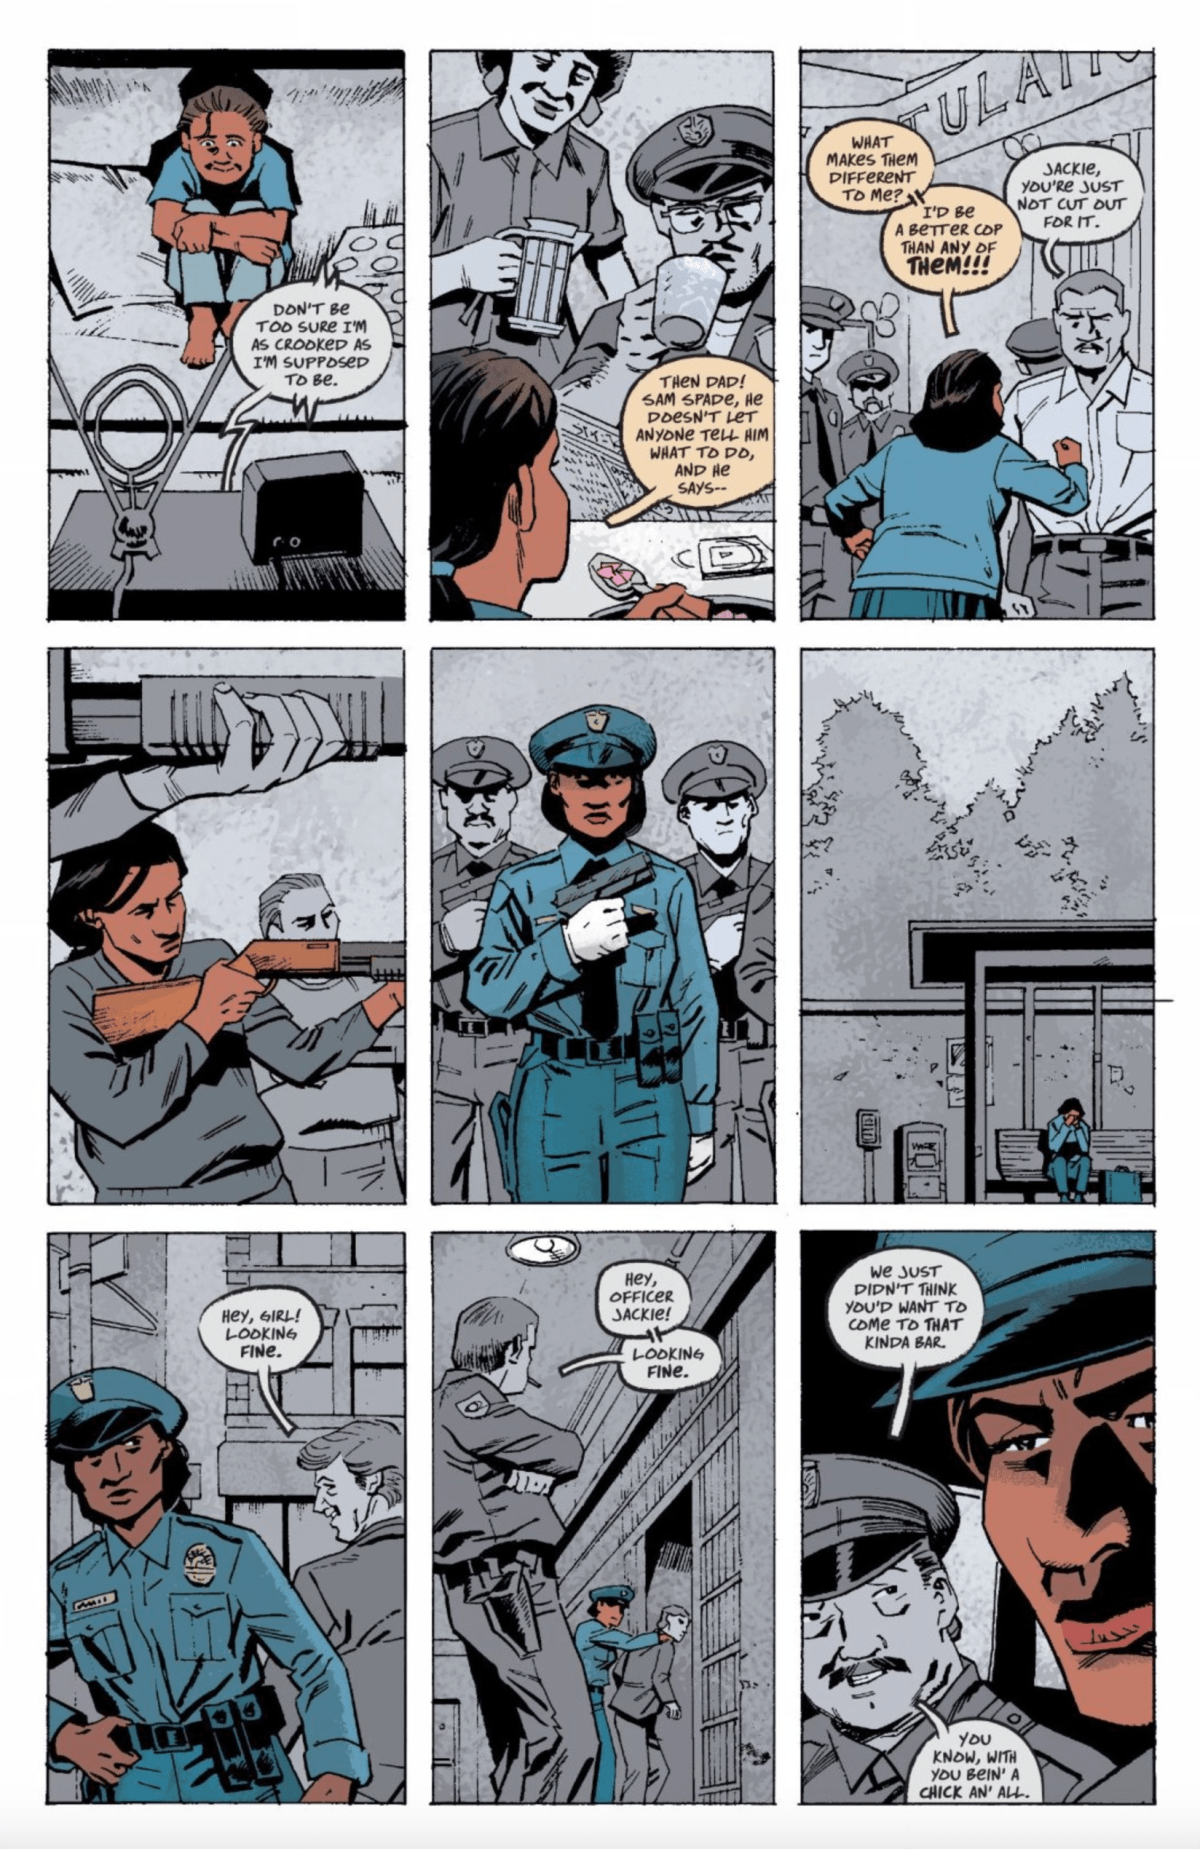 Page 74 of Killer Groove, where Jackie's inspired but difficult journey to becoming a police officer is shown.